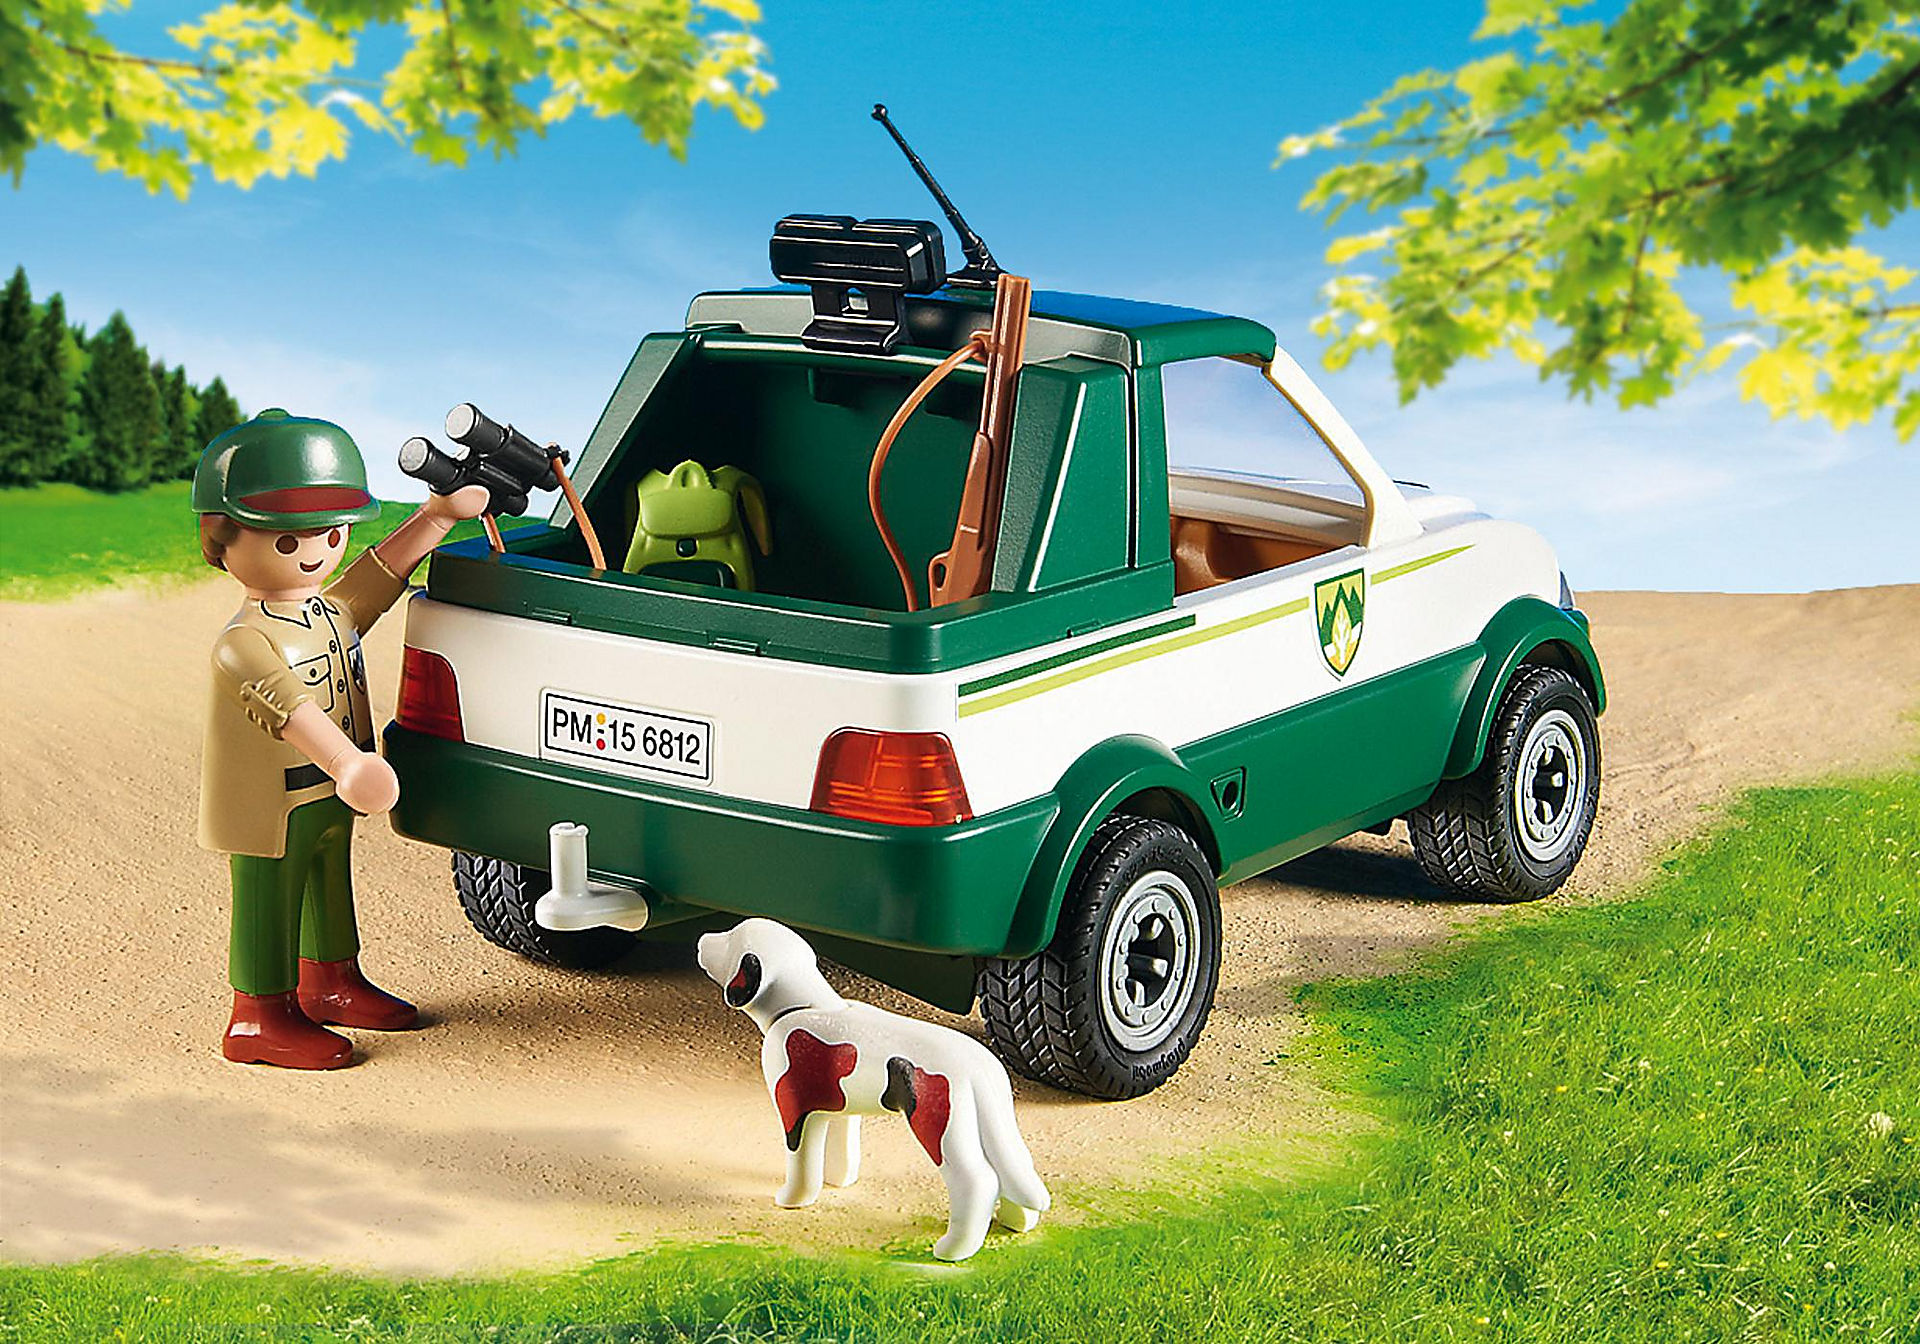 http://media.playmobil.com/i/playmobil/6812_product_extra1/Terreinwagen met boswachter